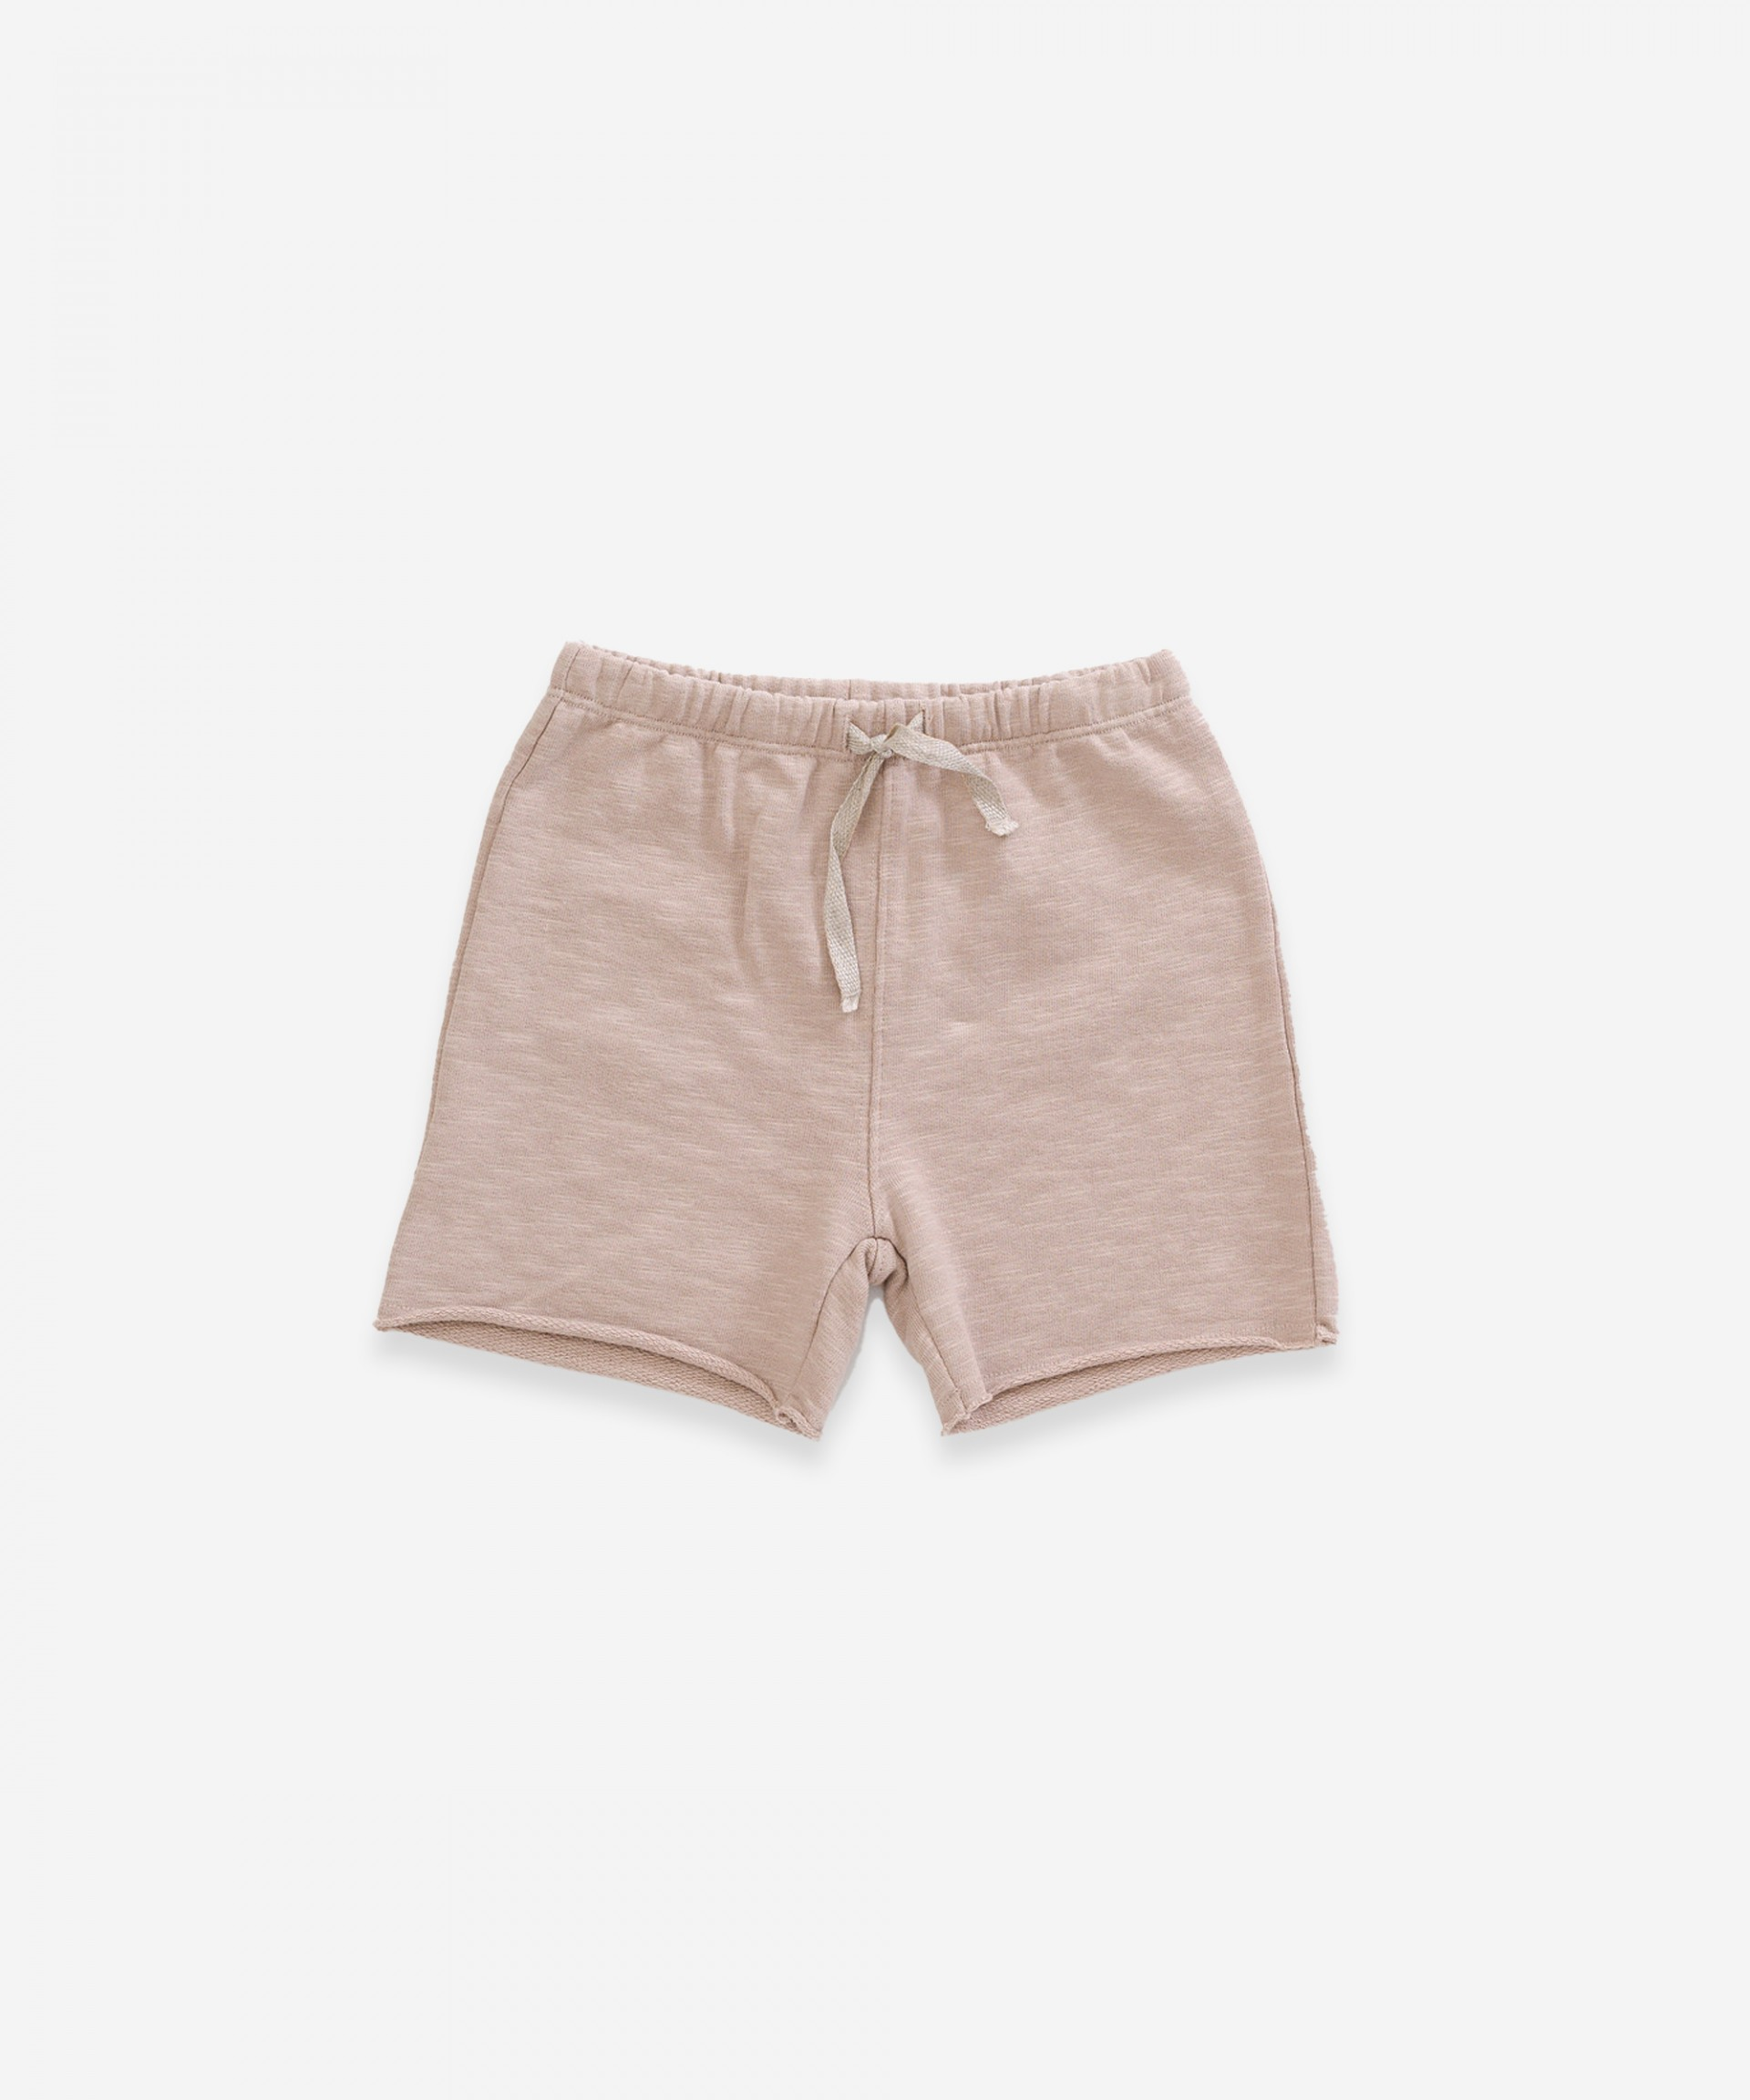 Shorts in organic cotton with pocket | Weaving